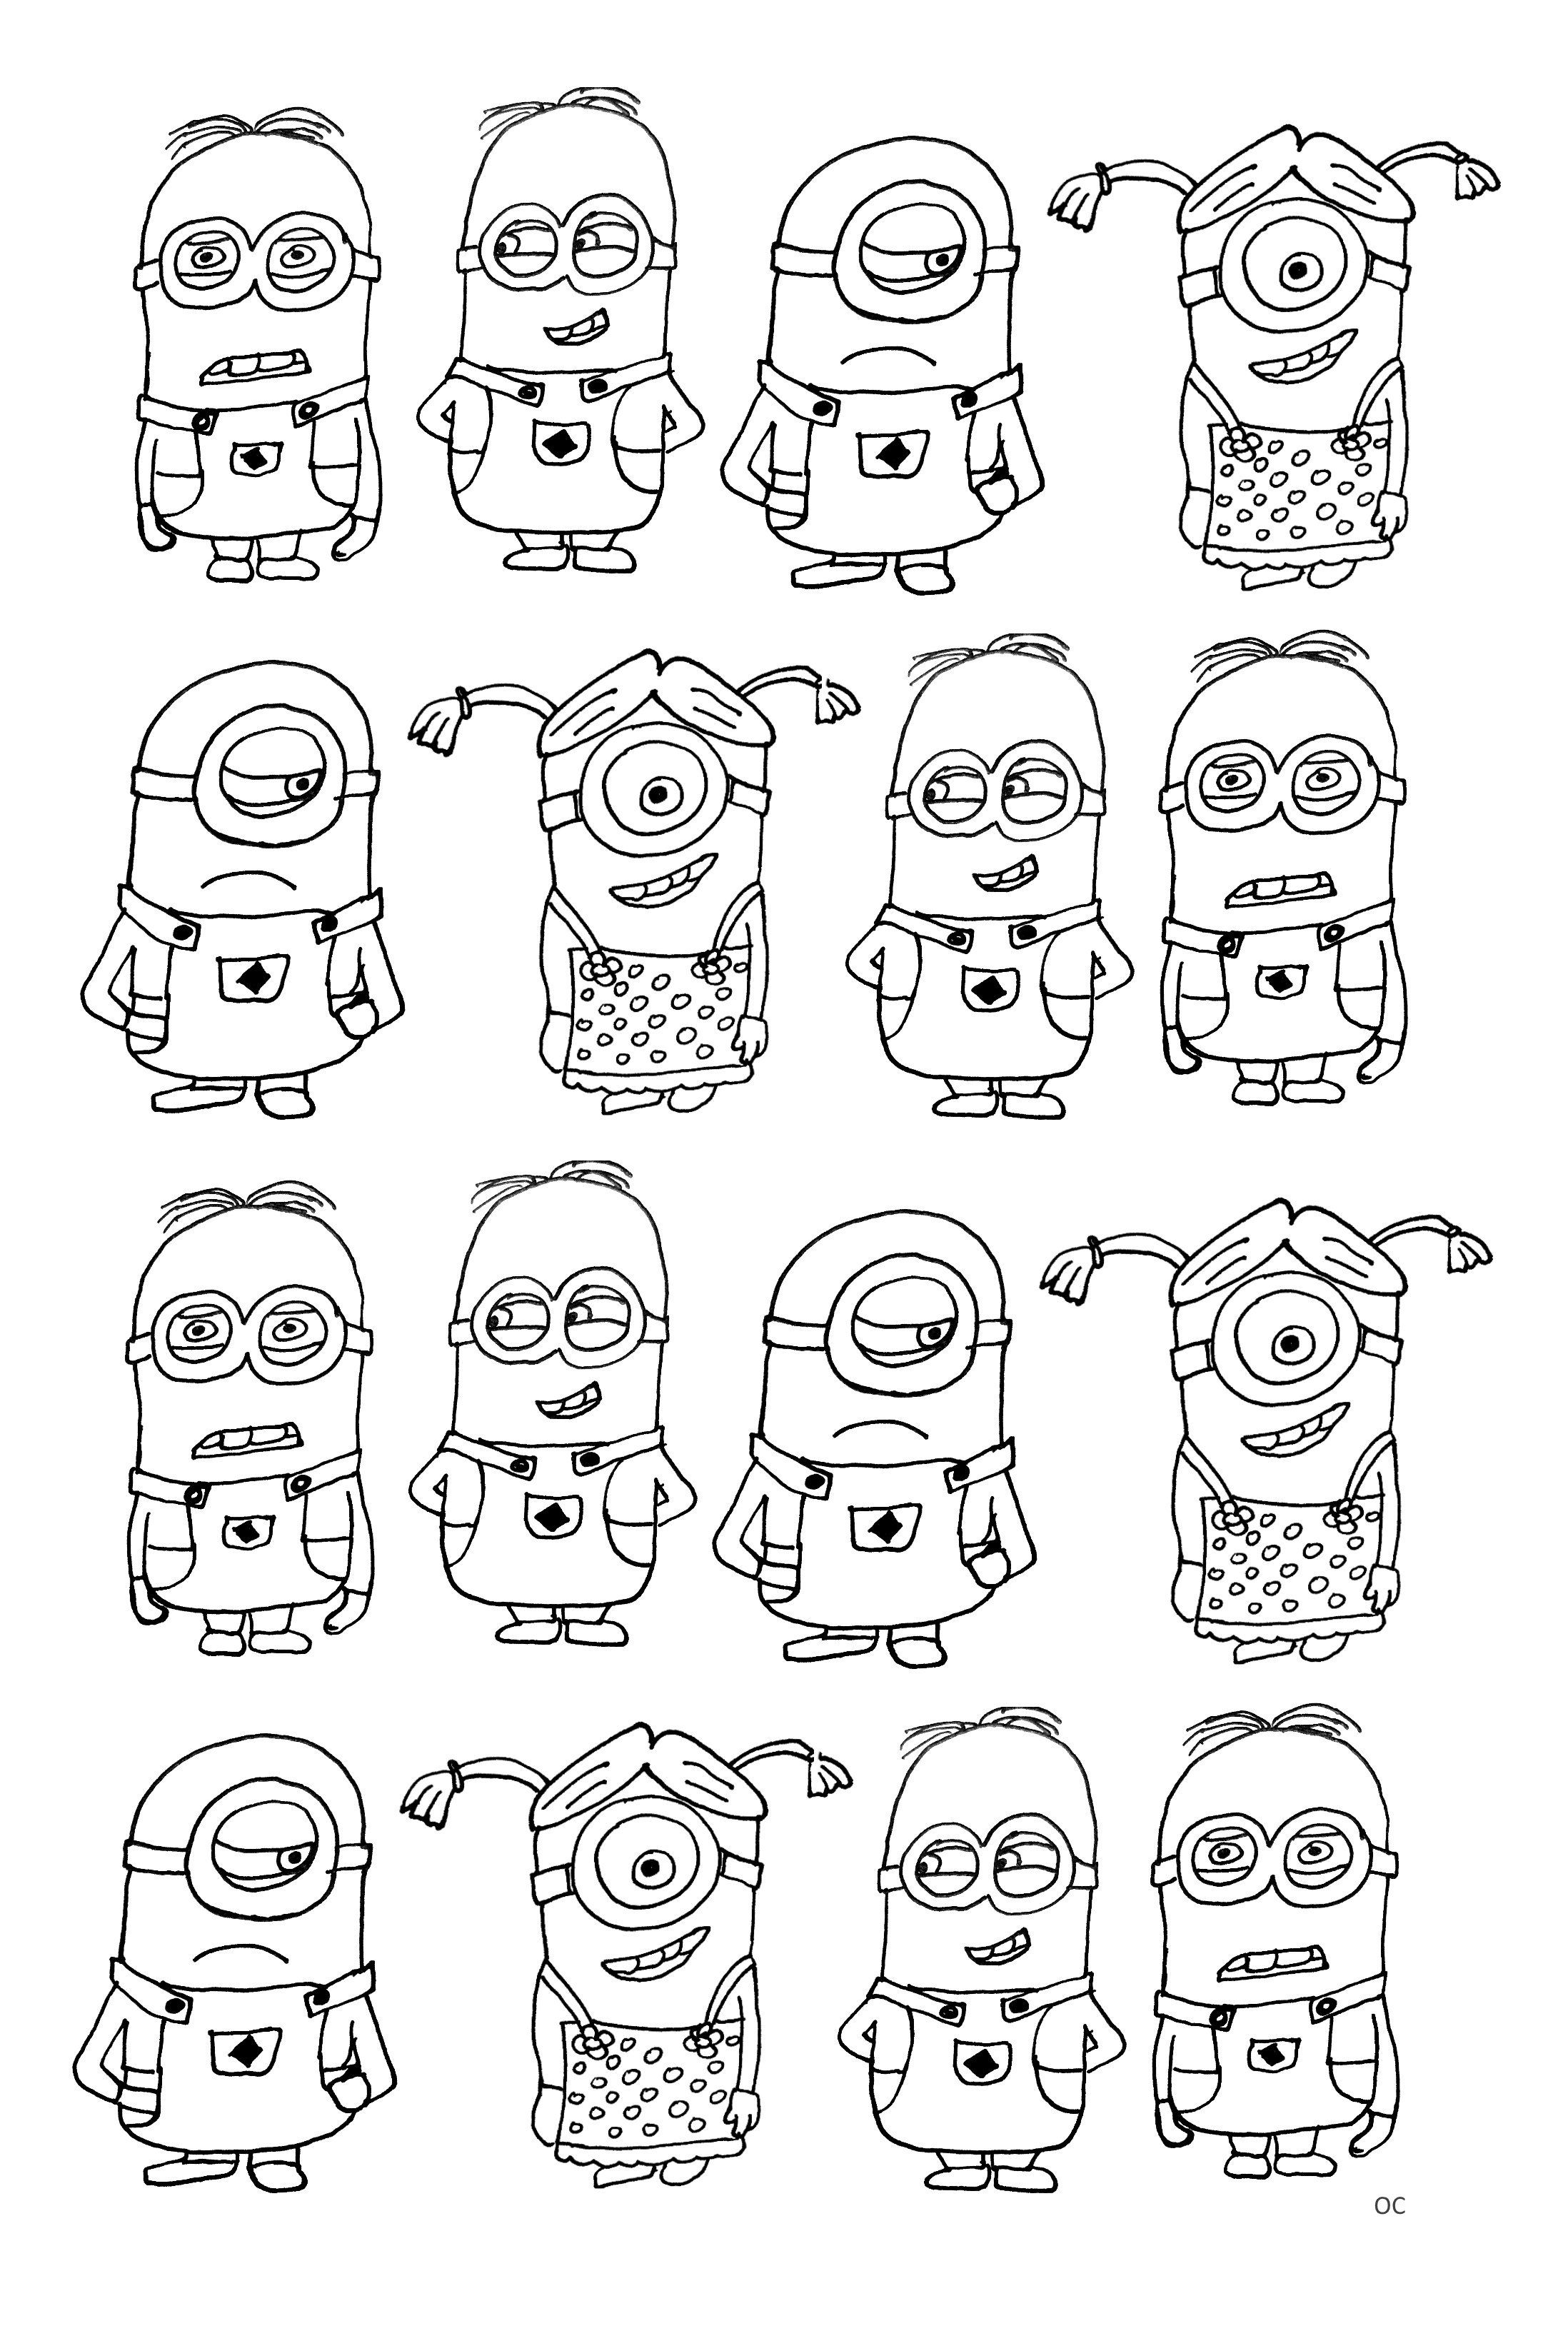 Minion maid coloring pages - Free Coloring Page Coloring Numerous Minions Coloring Page With Minions